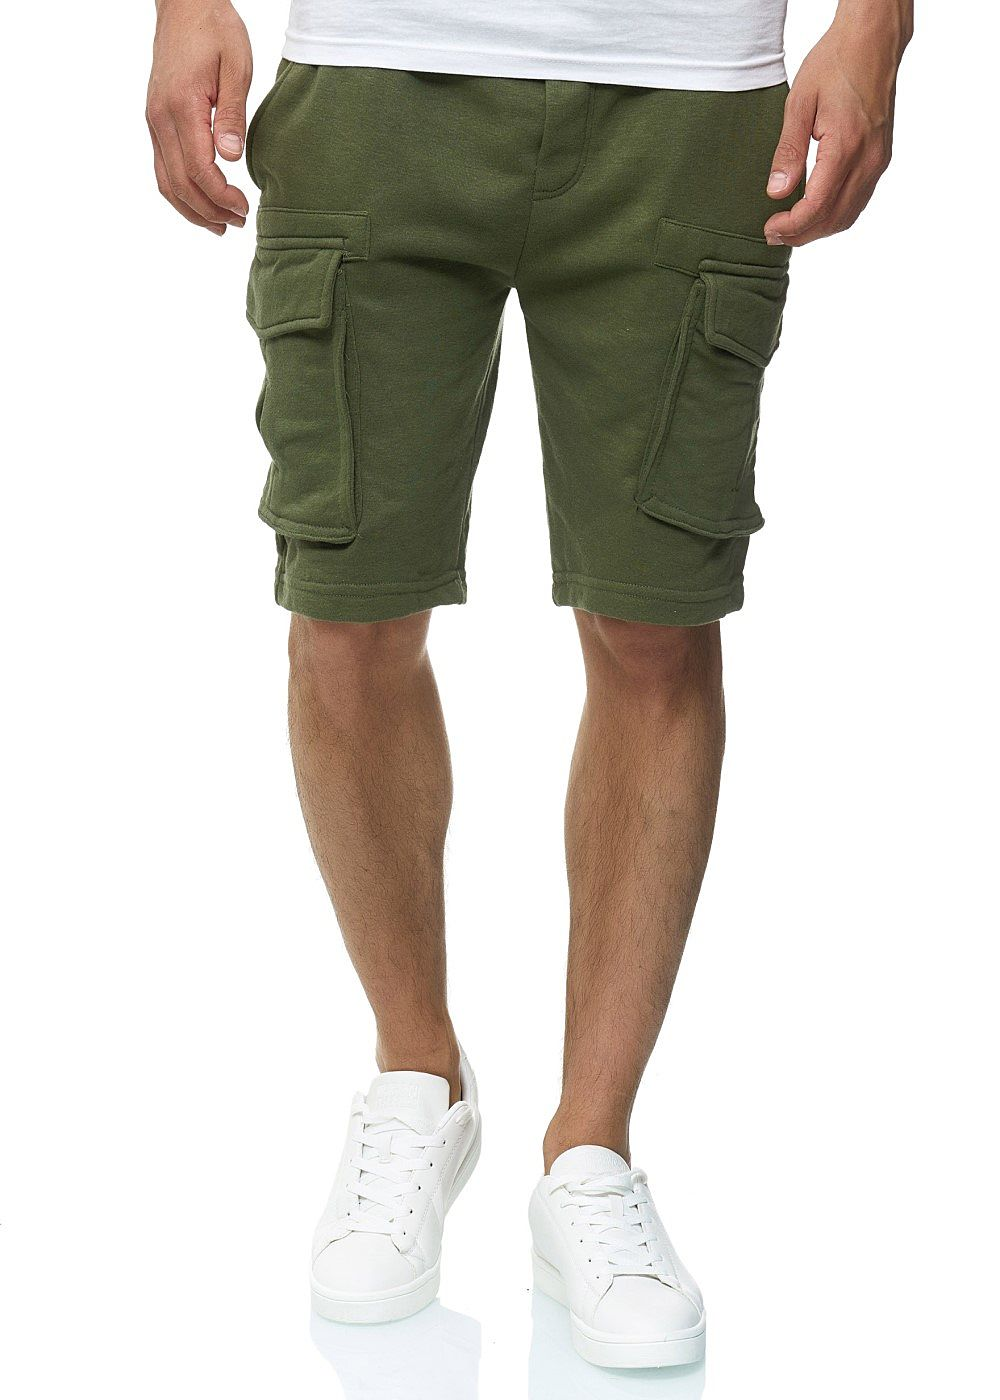 Eight2Nine Herren Cargo Sweat Shorts 4-Pockets by Urban Surface ivy olive grün - Art.-Nr.: 19072792